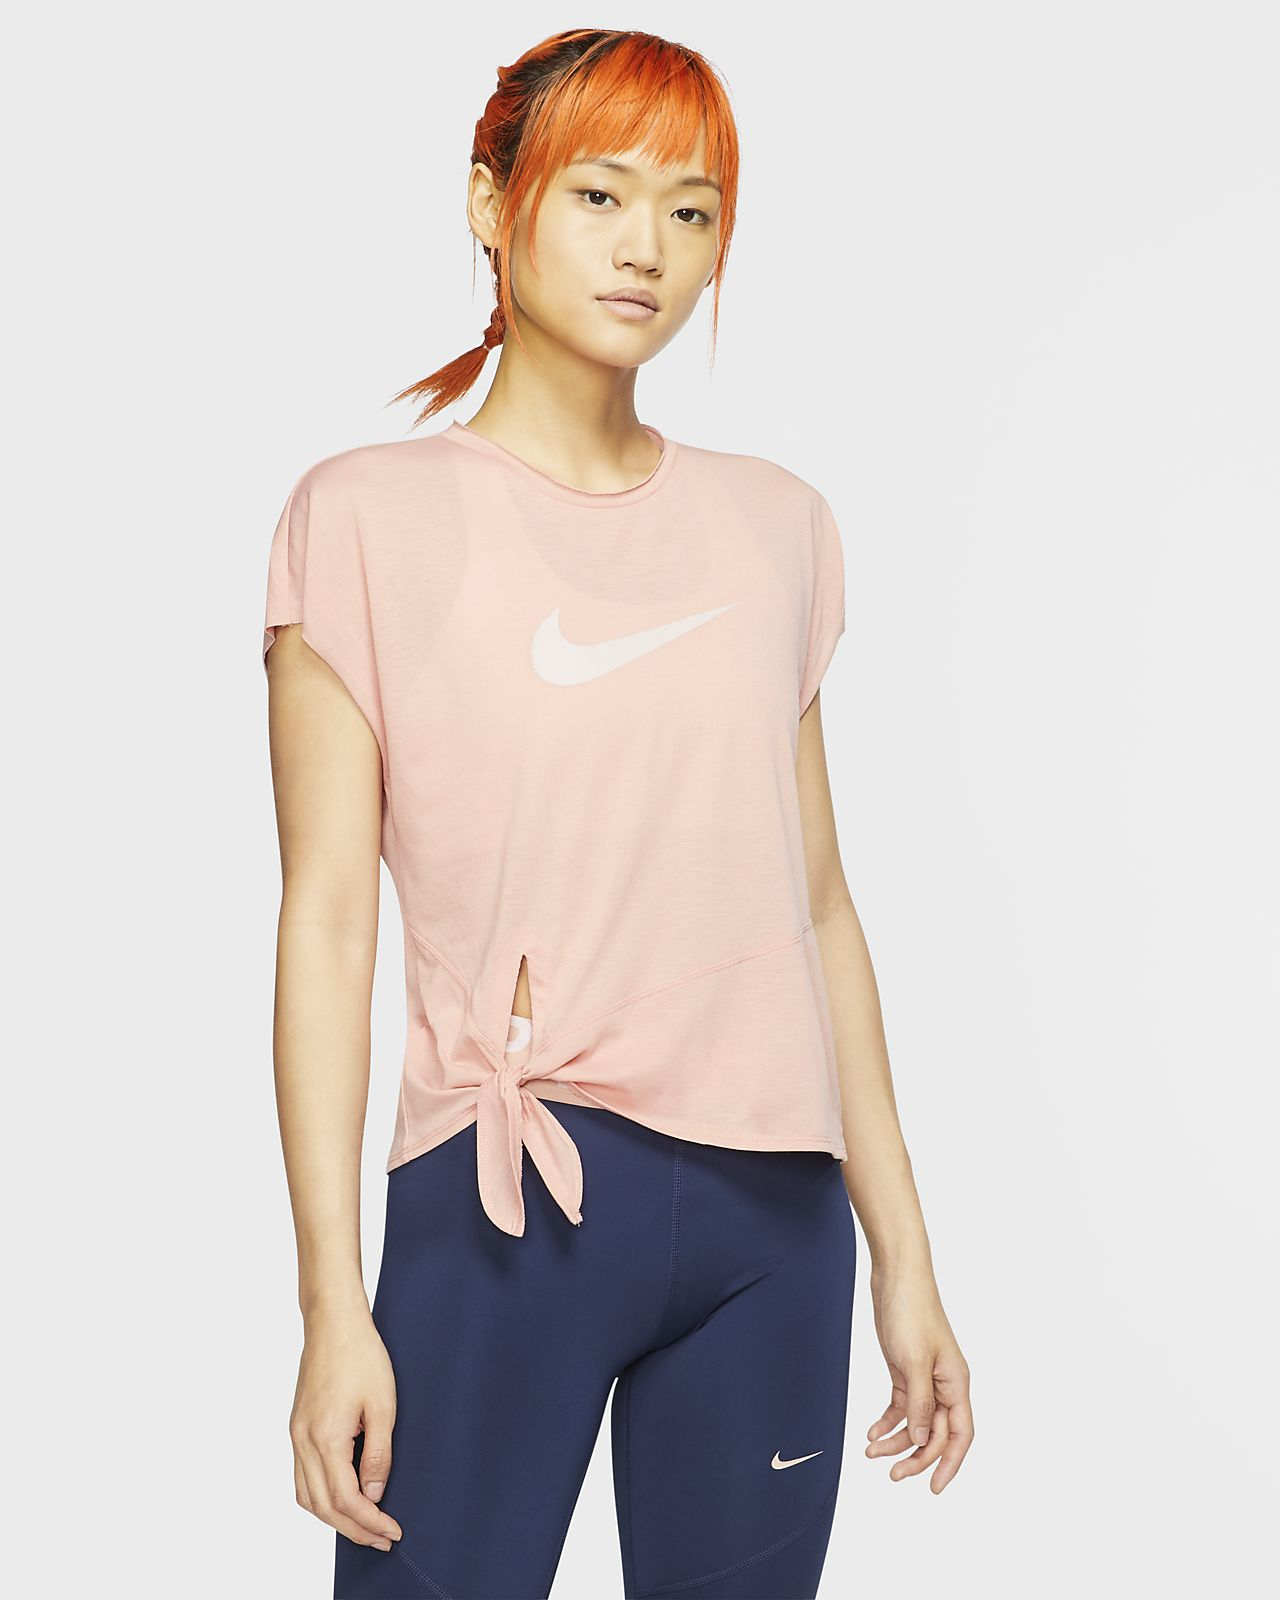 Nike Dri-FIT Trainingstop met korte mouwen voor dames